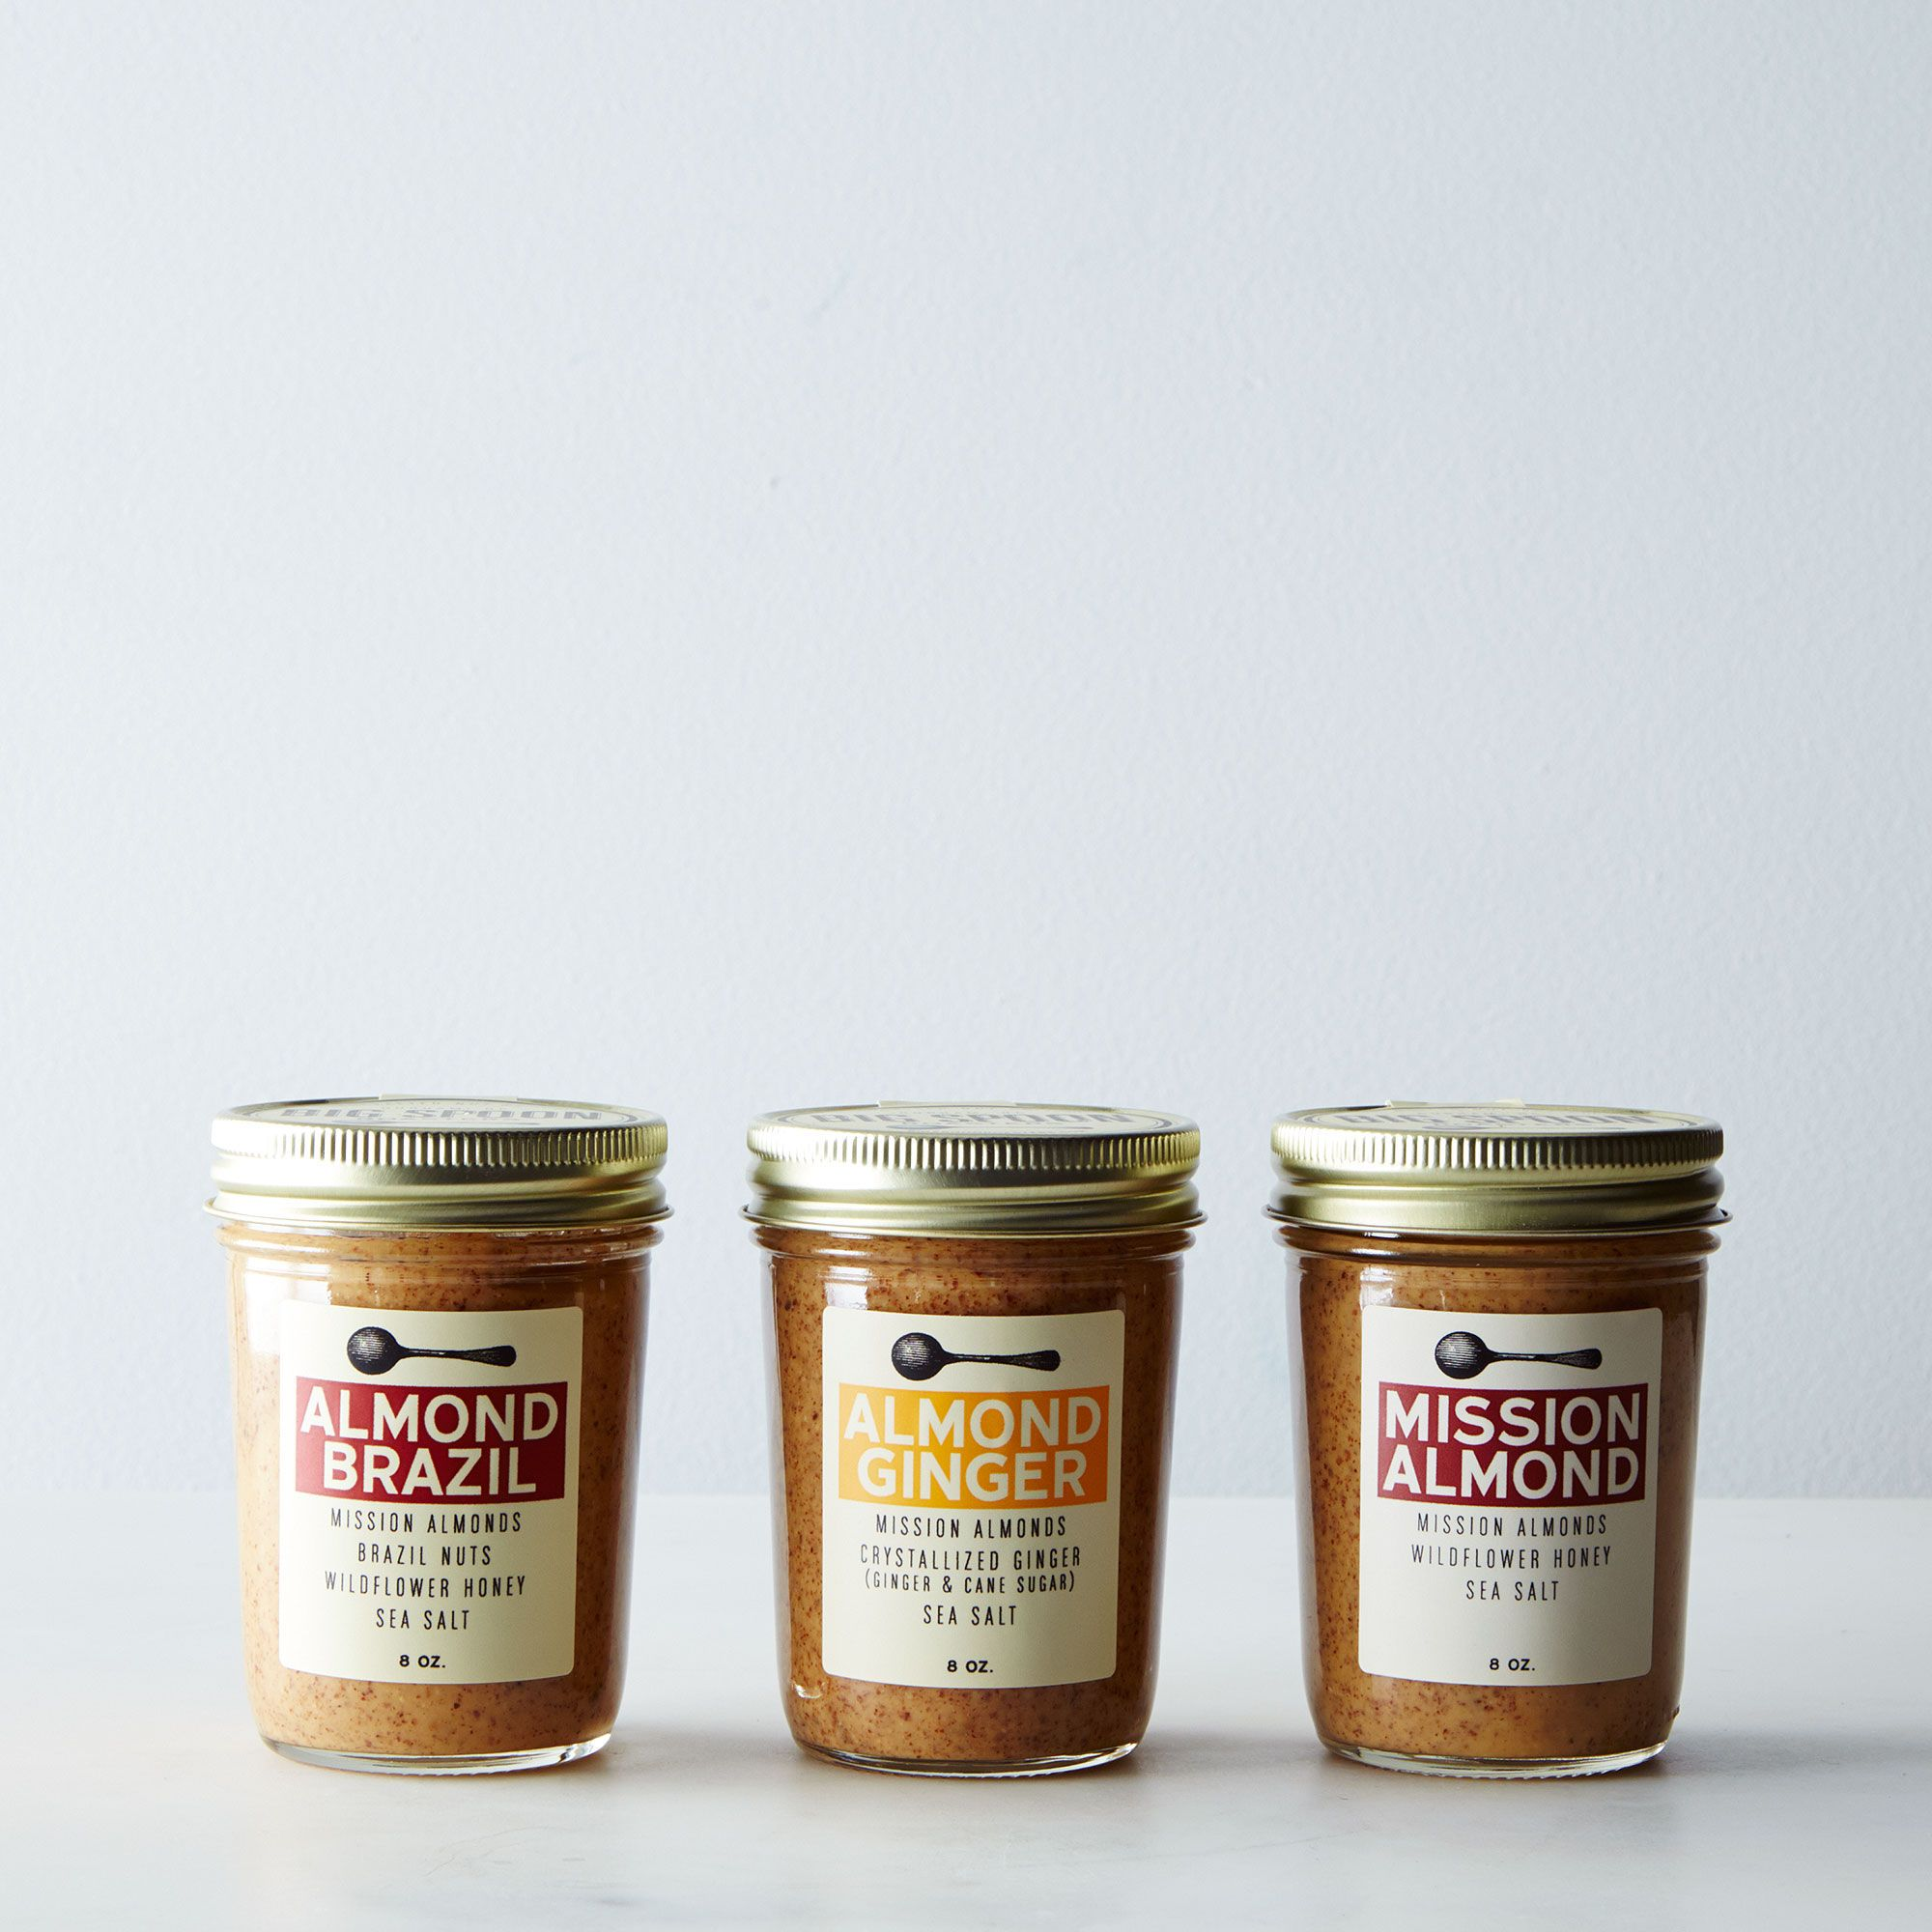 Ebb57d89 191e 433f b55b 9899903806d9  2014 0514 big spoon roasters ginger mission almond butter 003